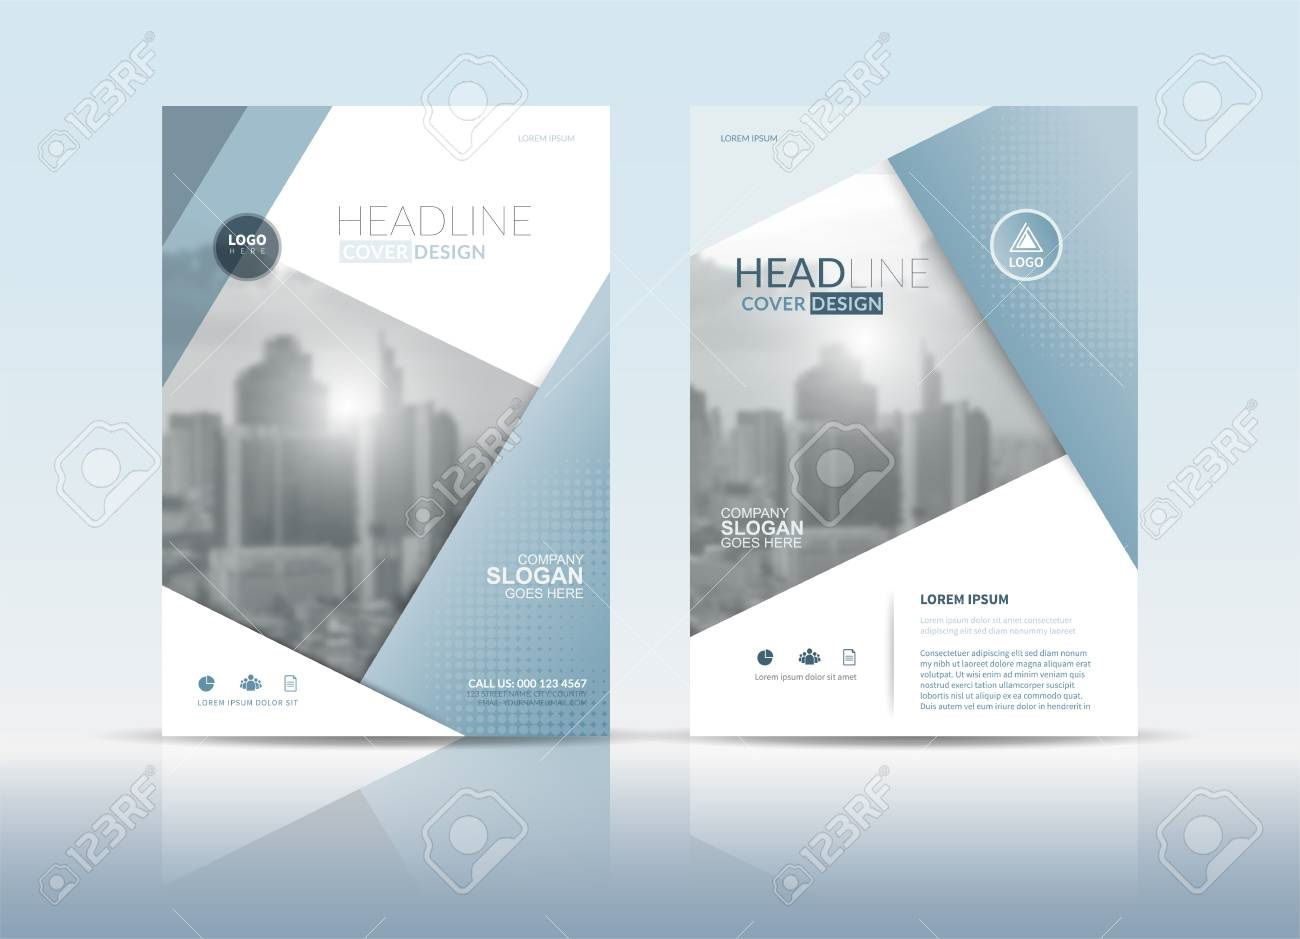 003 Dreaded Free Download Annual Report Cover Design Template Inspiration  In Word PageFull